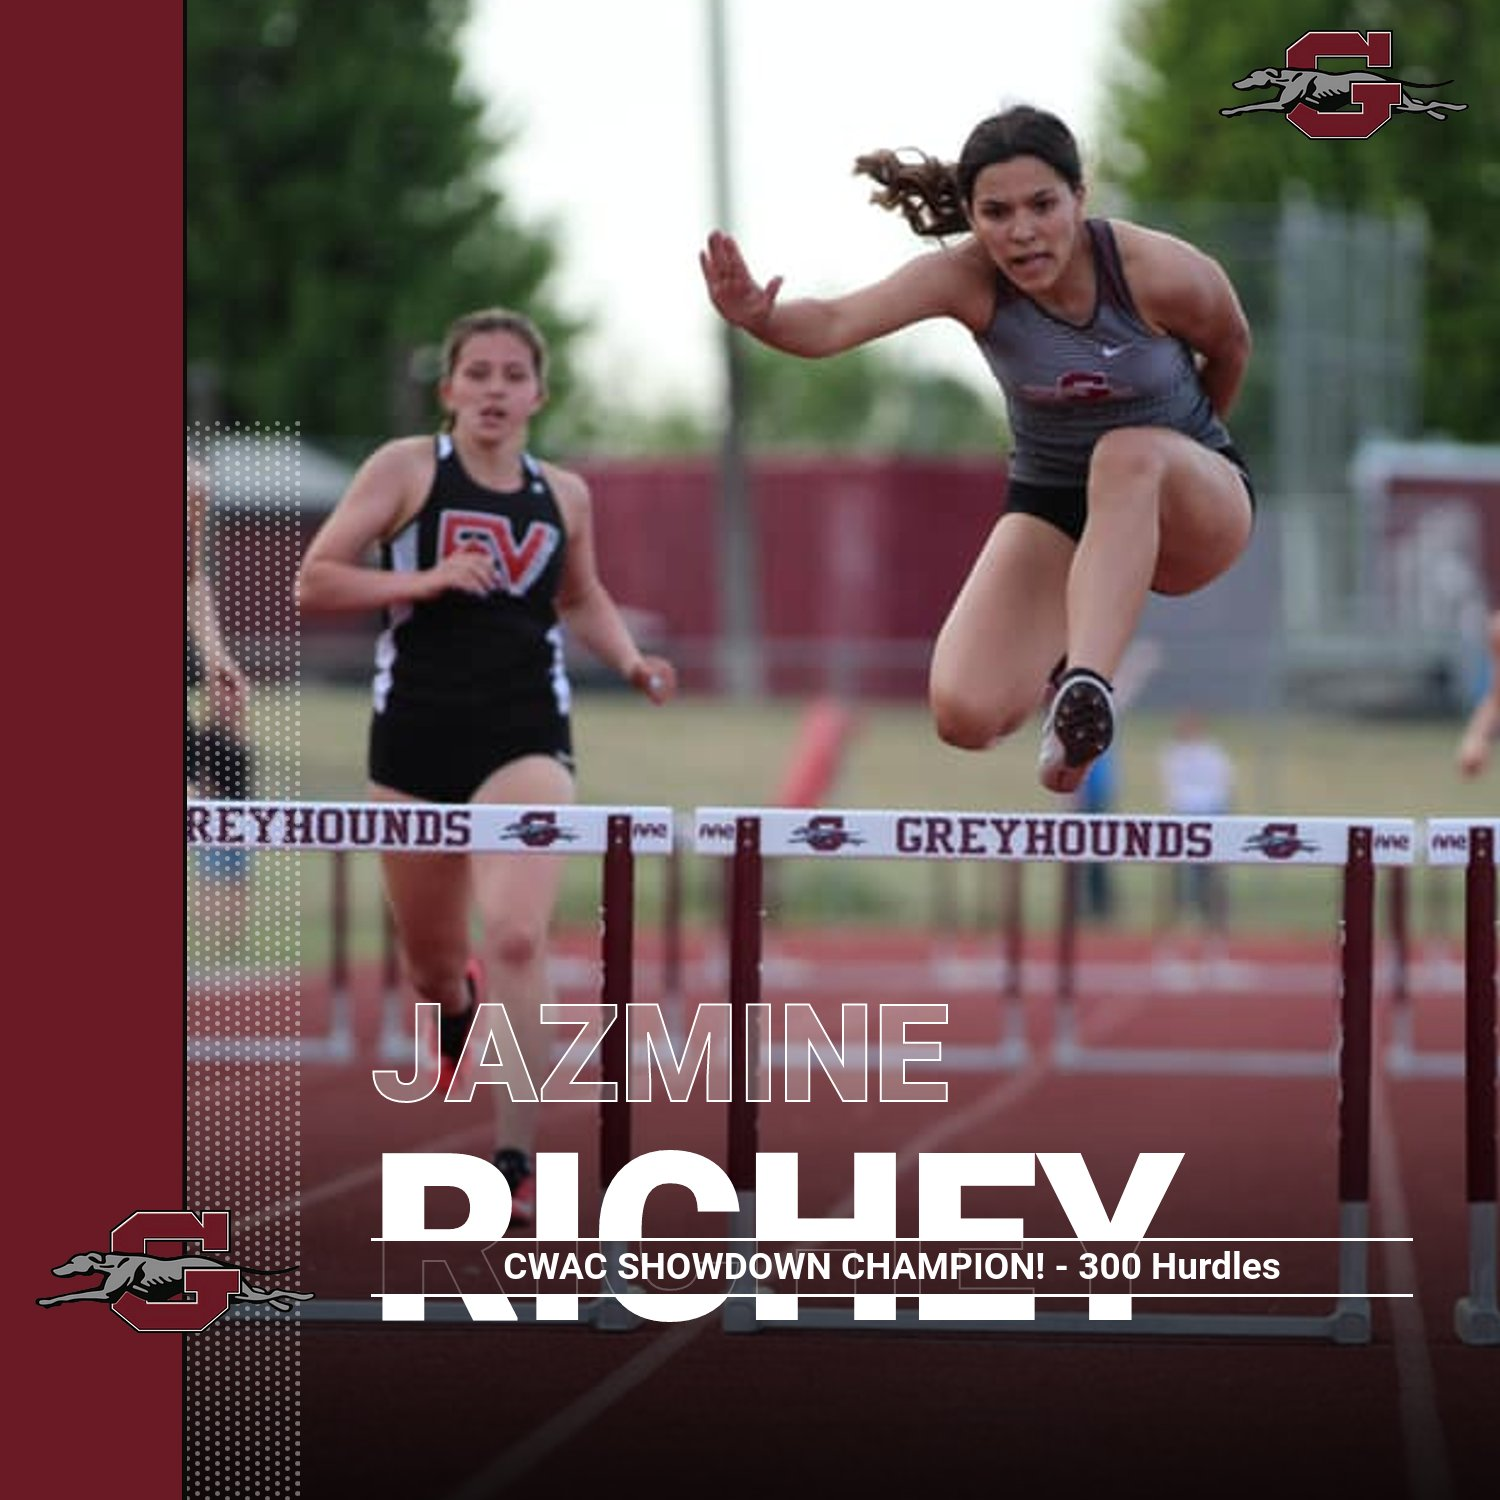 Jazmine Richey wins 1st Place in 300 Meter Hurdles and 3rd Place in the 200 Meter Dash!